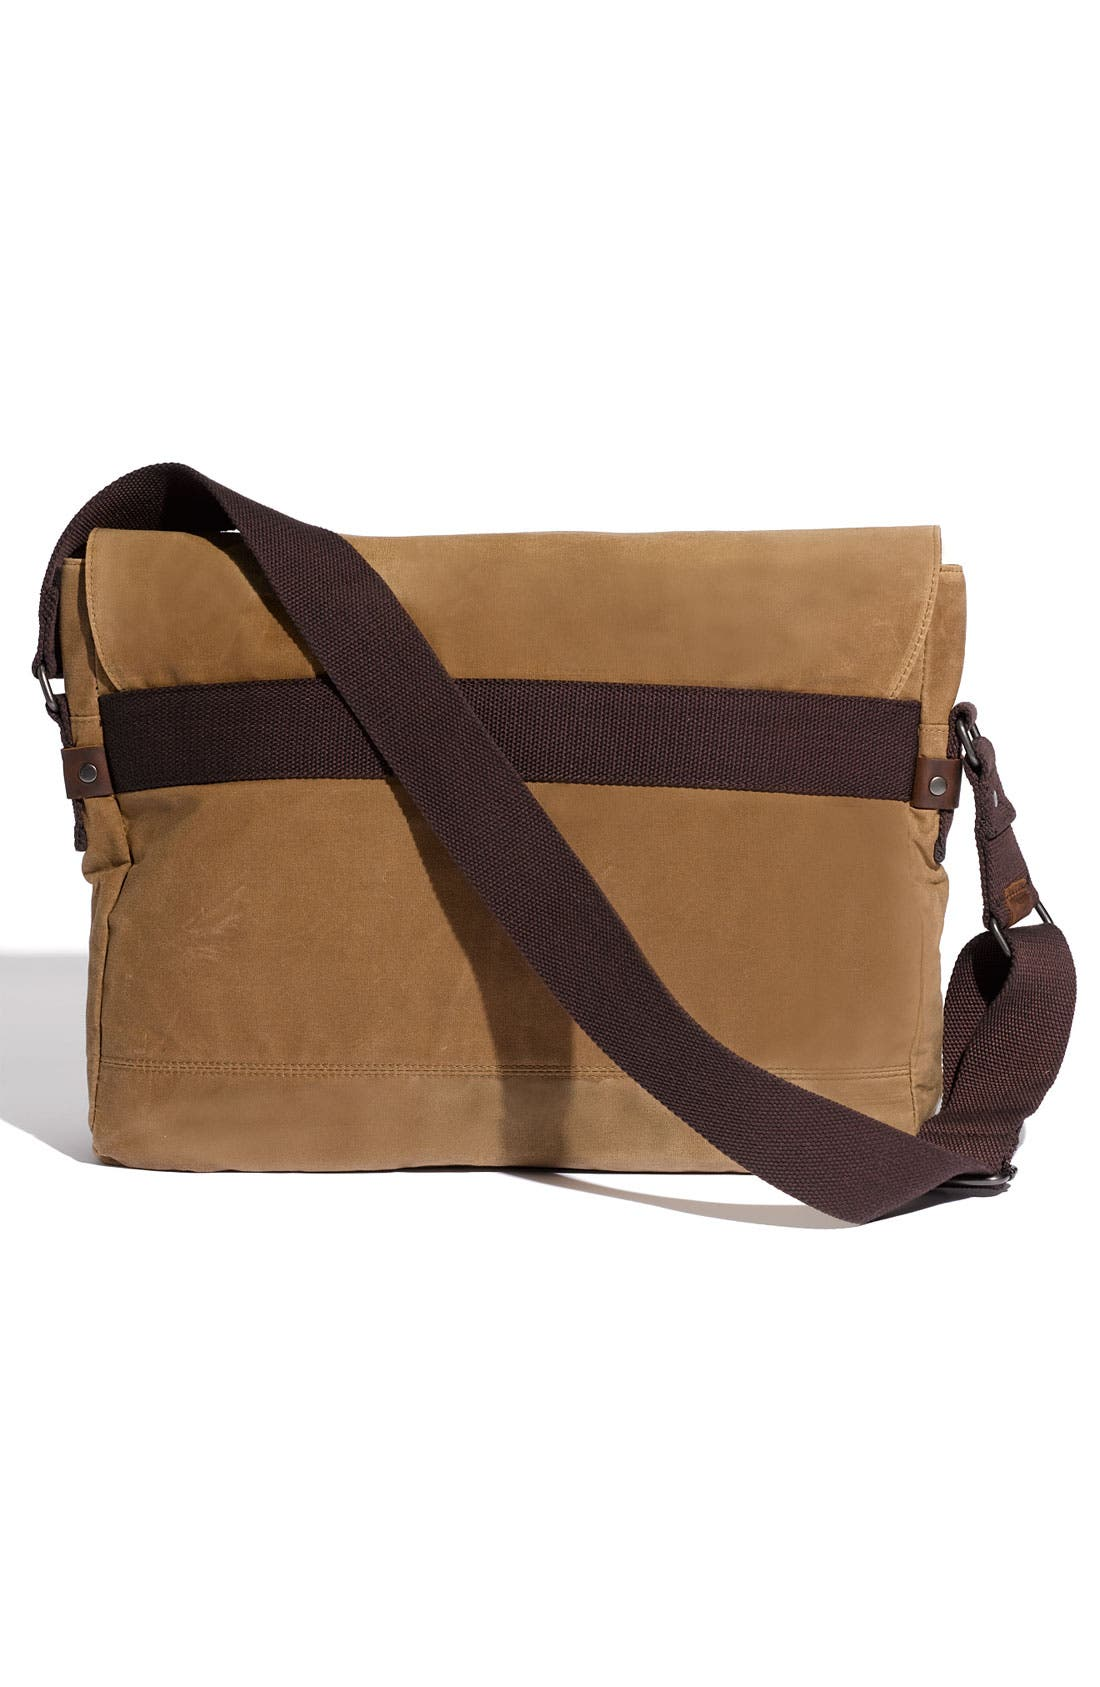 Alternate Image 2  - Levi's® 'River Rock' Messenger Bag